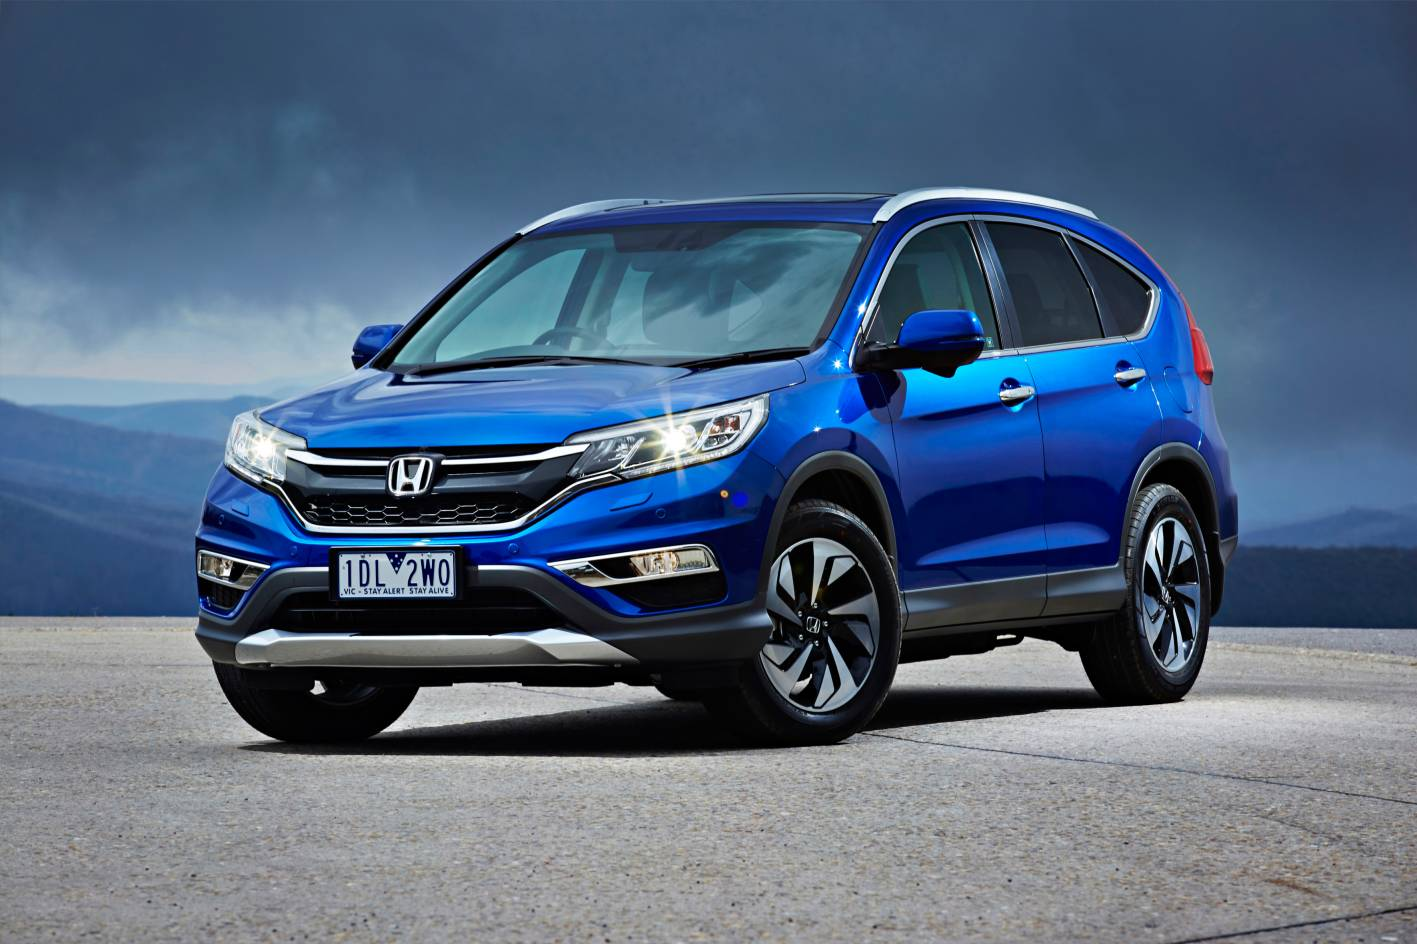 2014 Honda Cr V Suv Full Review With Images | Apps Directories